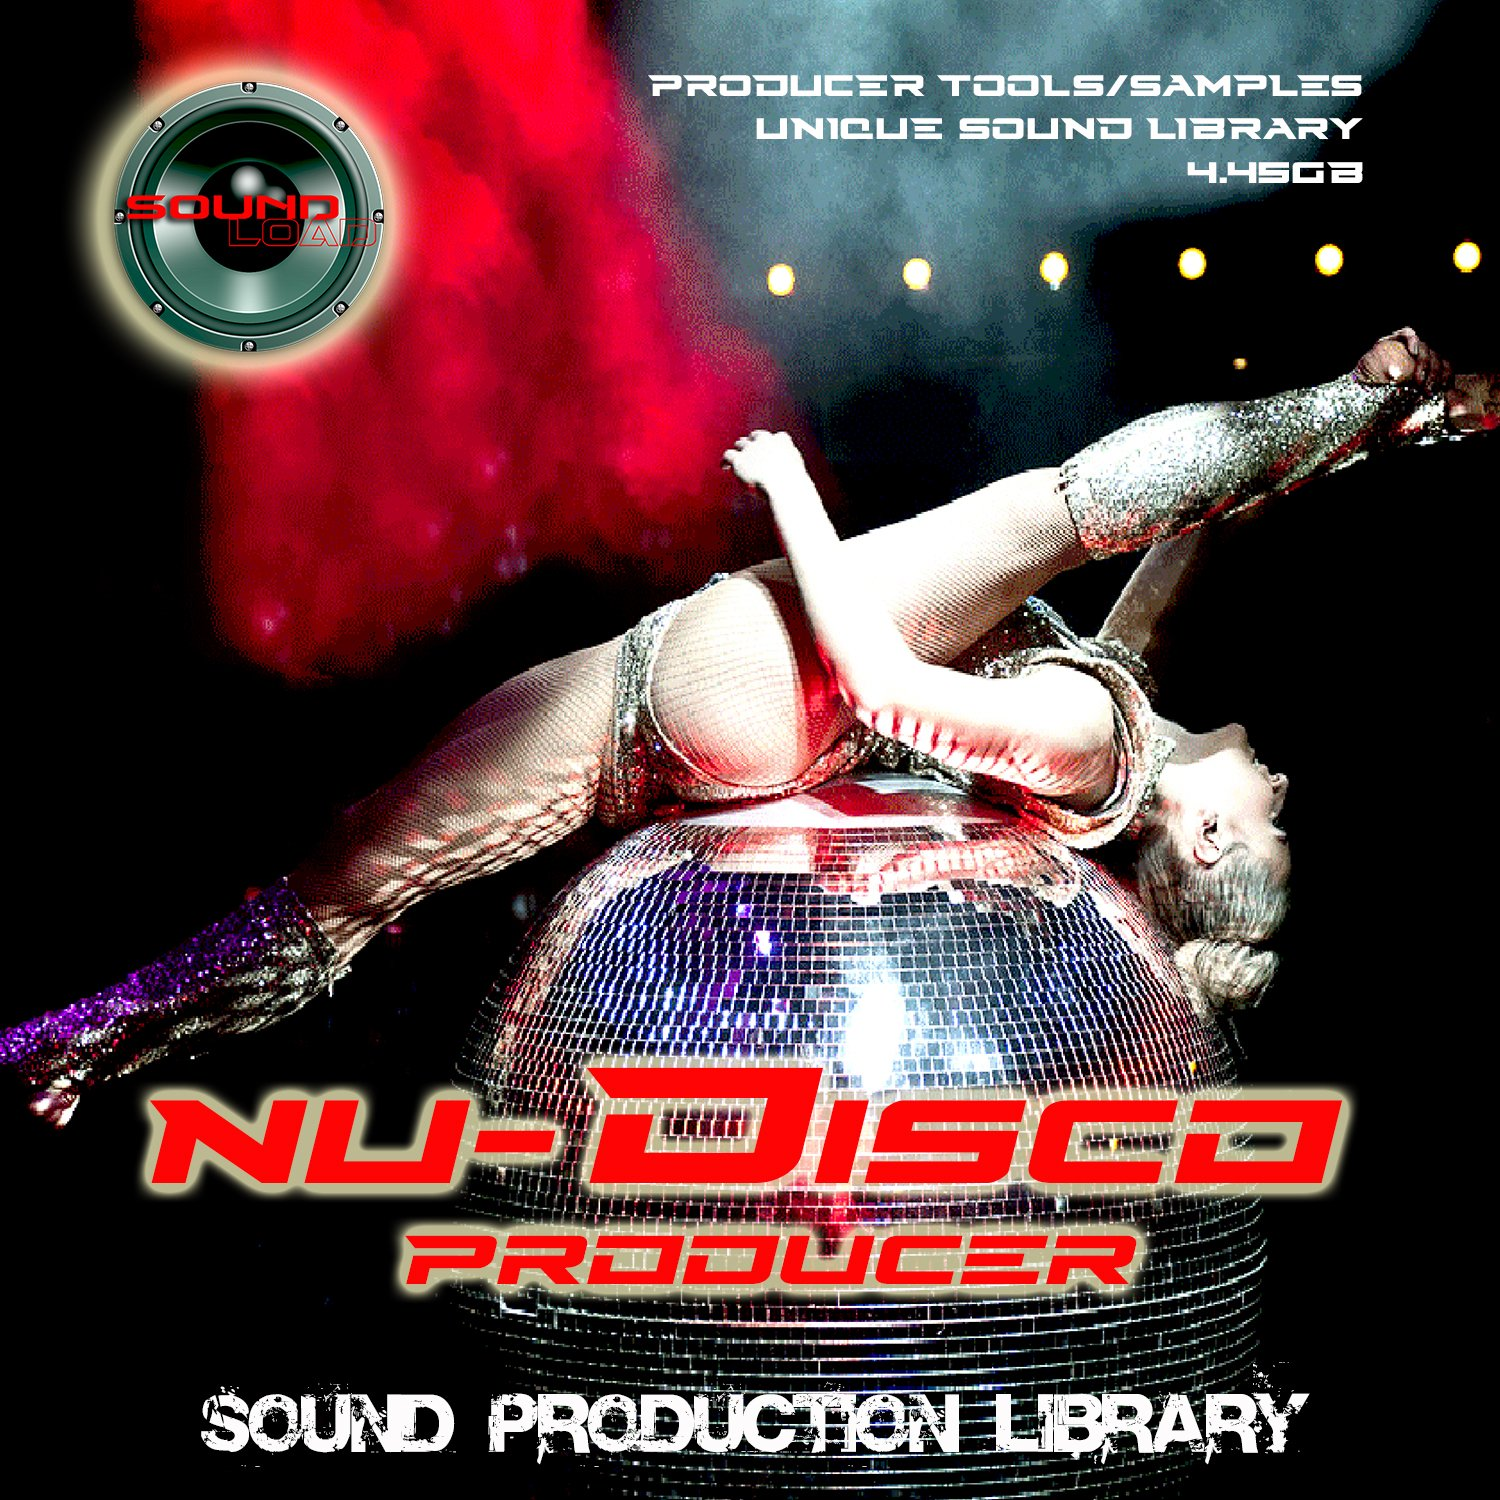 DISCO PRODUCER - THE Best of Disco Studio Audio Production Kit - Sound Library over 1,1GB Samples on DVD or download by SoundLoad